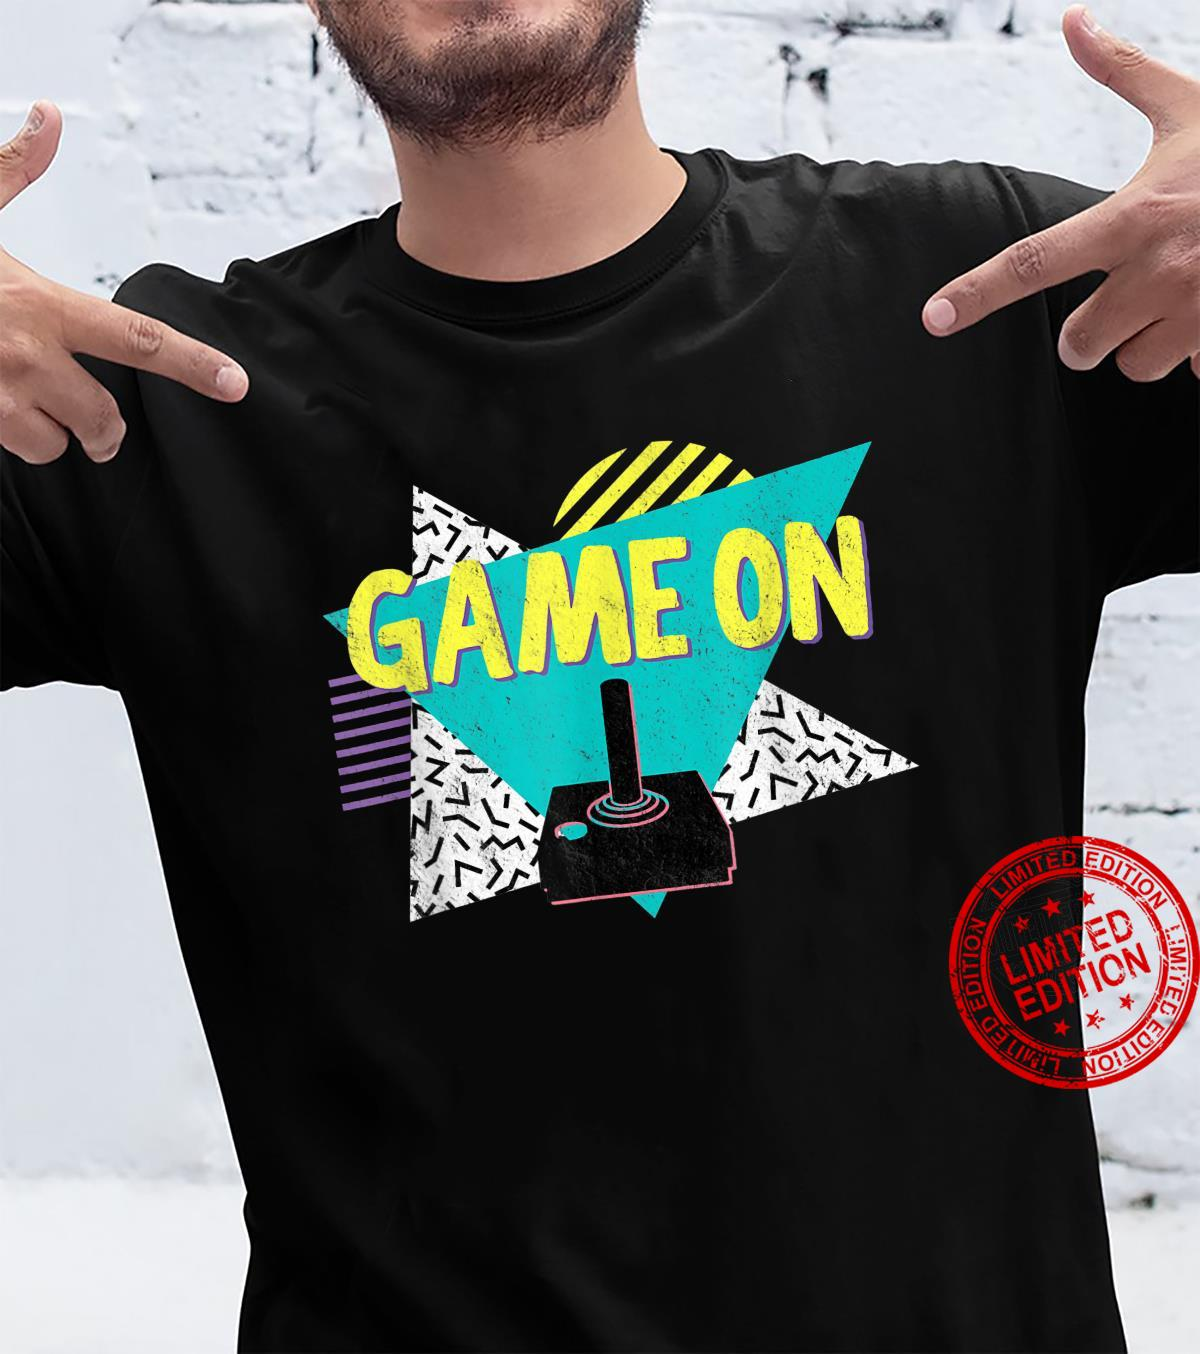 70s or 80s Retro Vintage Video Game Shirt